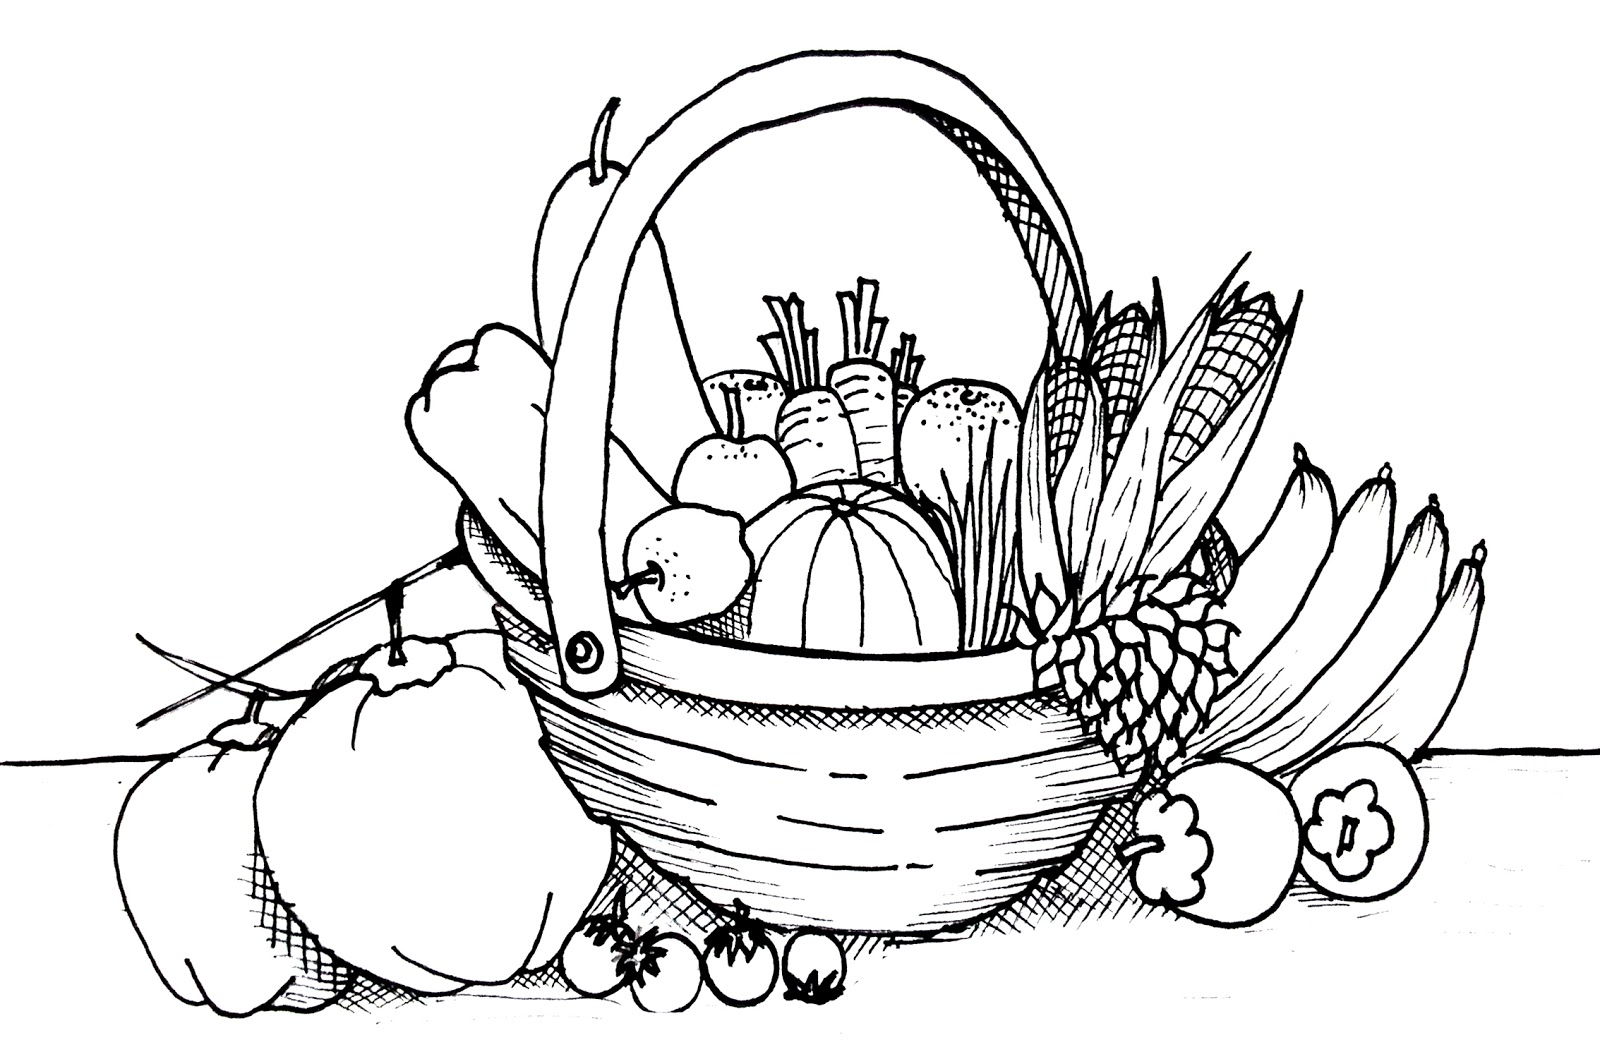 Fruits & Vegetables clipart basket drawing Pencil Drawings and vegetables and